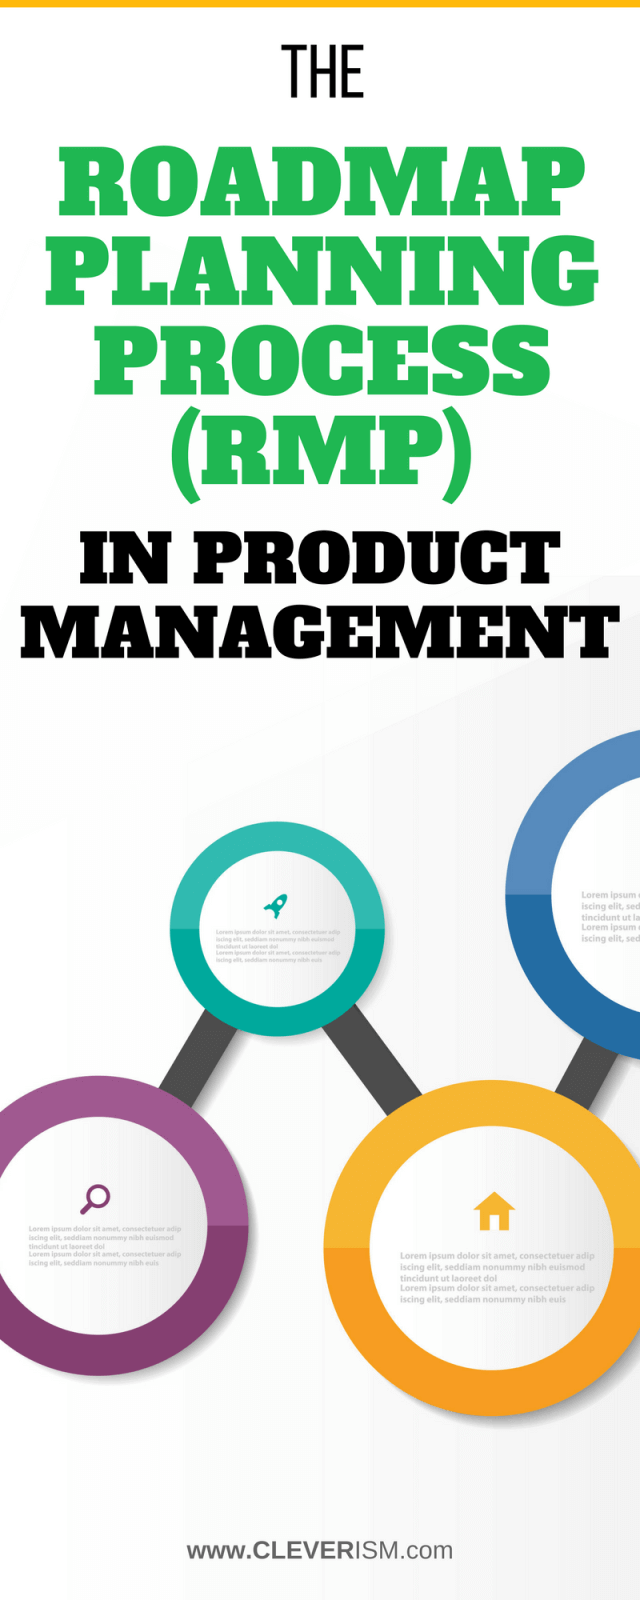 The Roadmap Planning Process Rmp In Product Management Business Management Roadmap Technology Roadmap